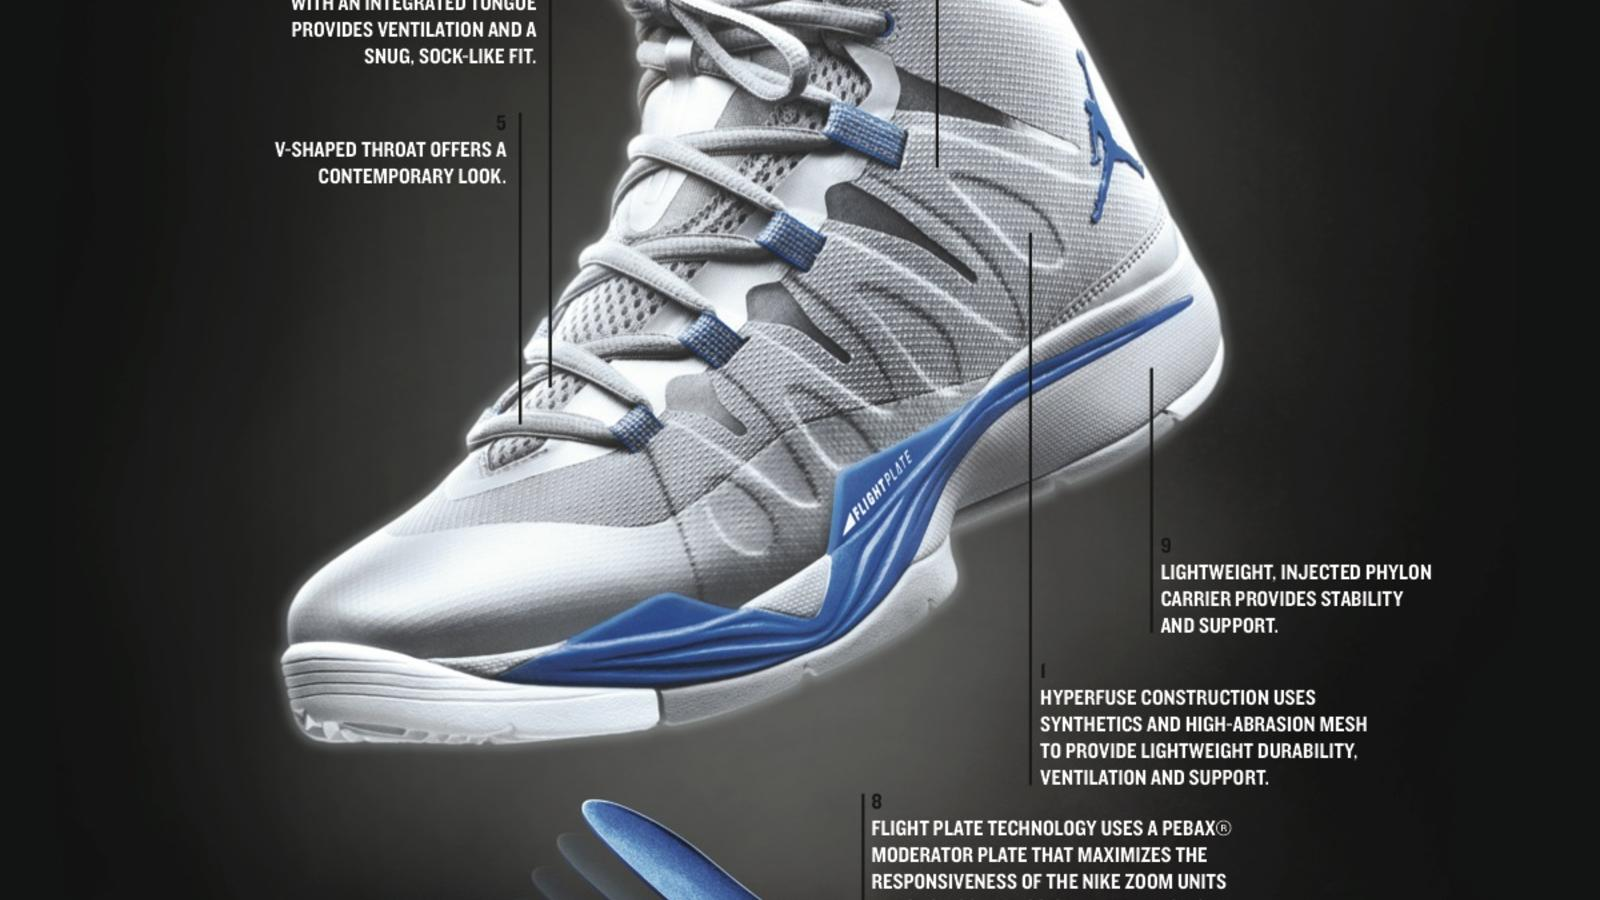 the latest 7a56e 9e80b jordan-super-fly-r2. jordan superfly2 group v2.  jordan superfly2 grey hero v2. jordan superfly2 black hero v2.  jordan superfly2 jade hero v2